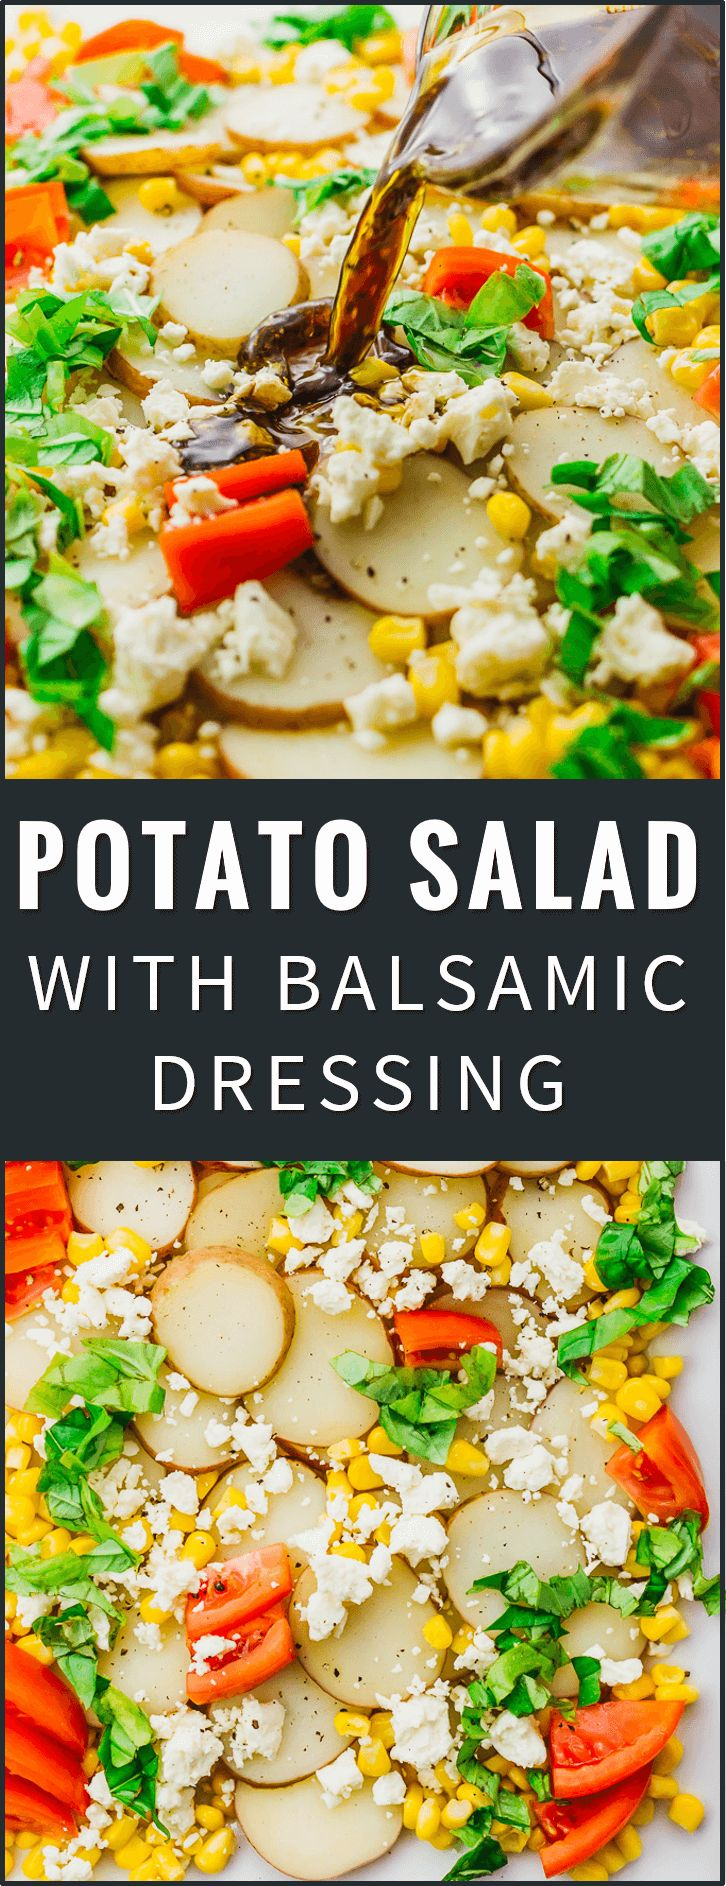 Drizzled with a balsamic horseradish dressing, this flavorful potato salad has sliced red potatoes, tomatoes, corn, feta cheese, and basil leaves. easy, recipe, dressing, classic, best, loaded, pioneer woman, healthy, mustard, no mayo, redskin, old fashioned, vegan, simple, homemade, italian, greek, vinegar, paula deen, white, paleo, traditional, basic, american, herb, how to make potato salad, texas, red bliss, dairy free, quick, light, mayonnaise, vinaigrette, cold, eggless...